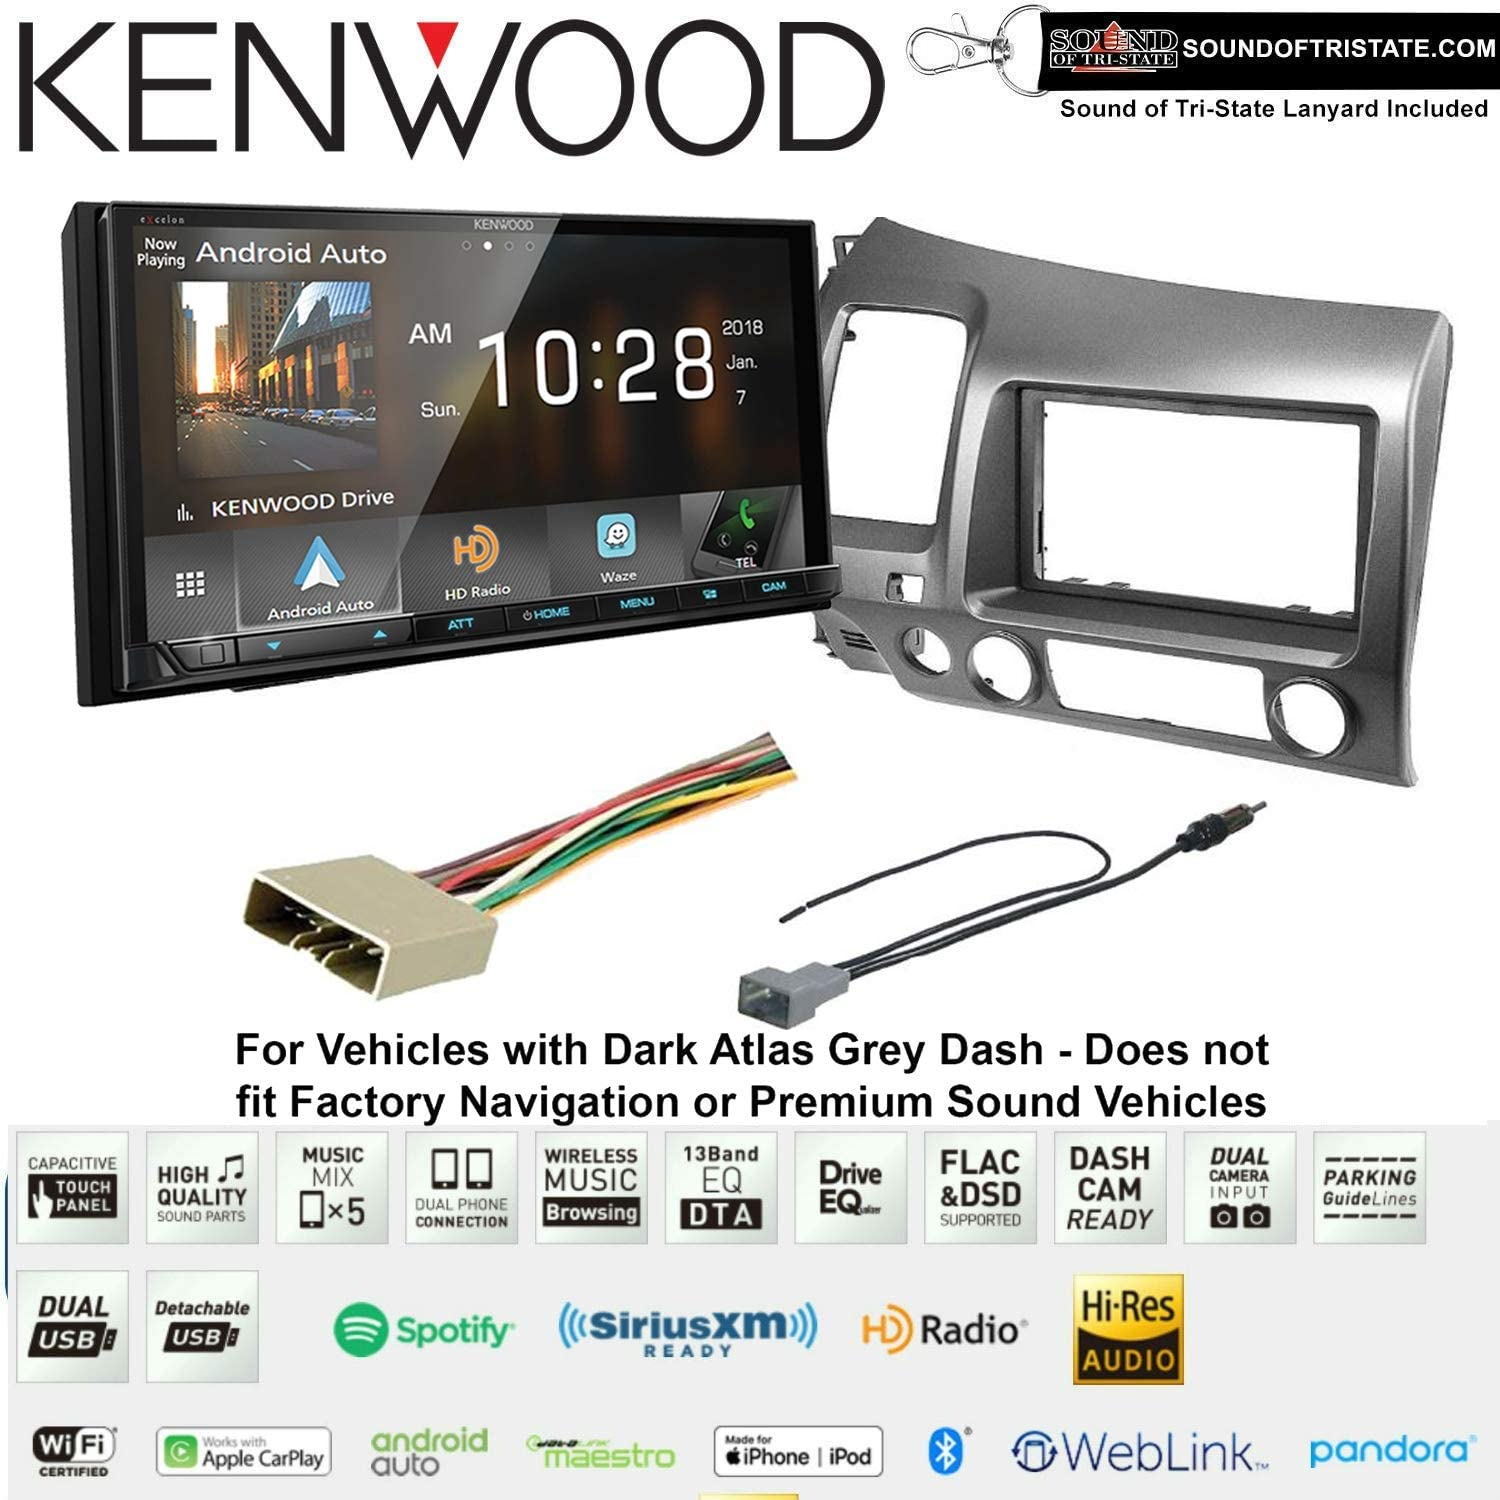 Honda Civic Kenwood 2018 Spotify Sirius Stereo Taupe Dash Kit Harness for 06